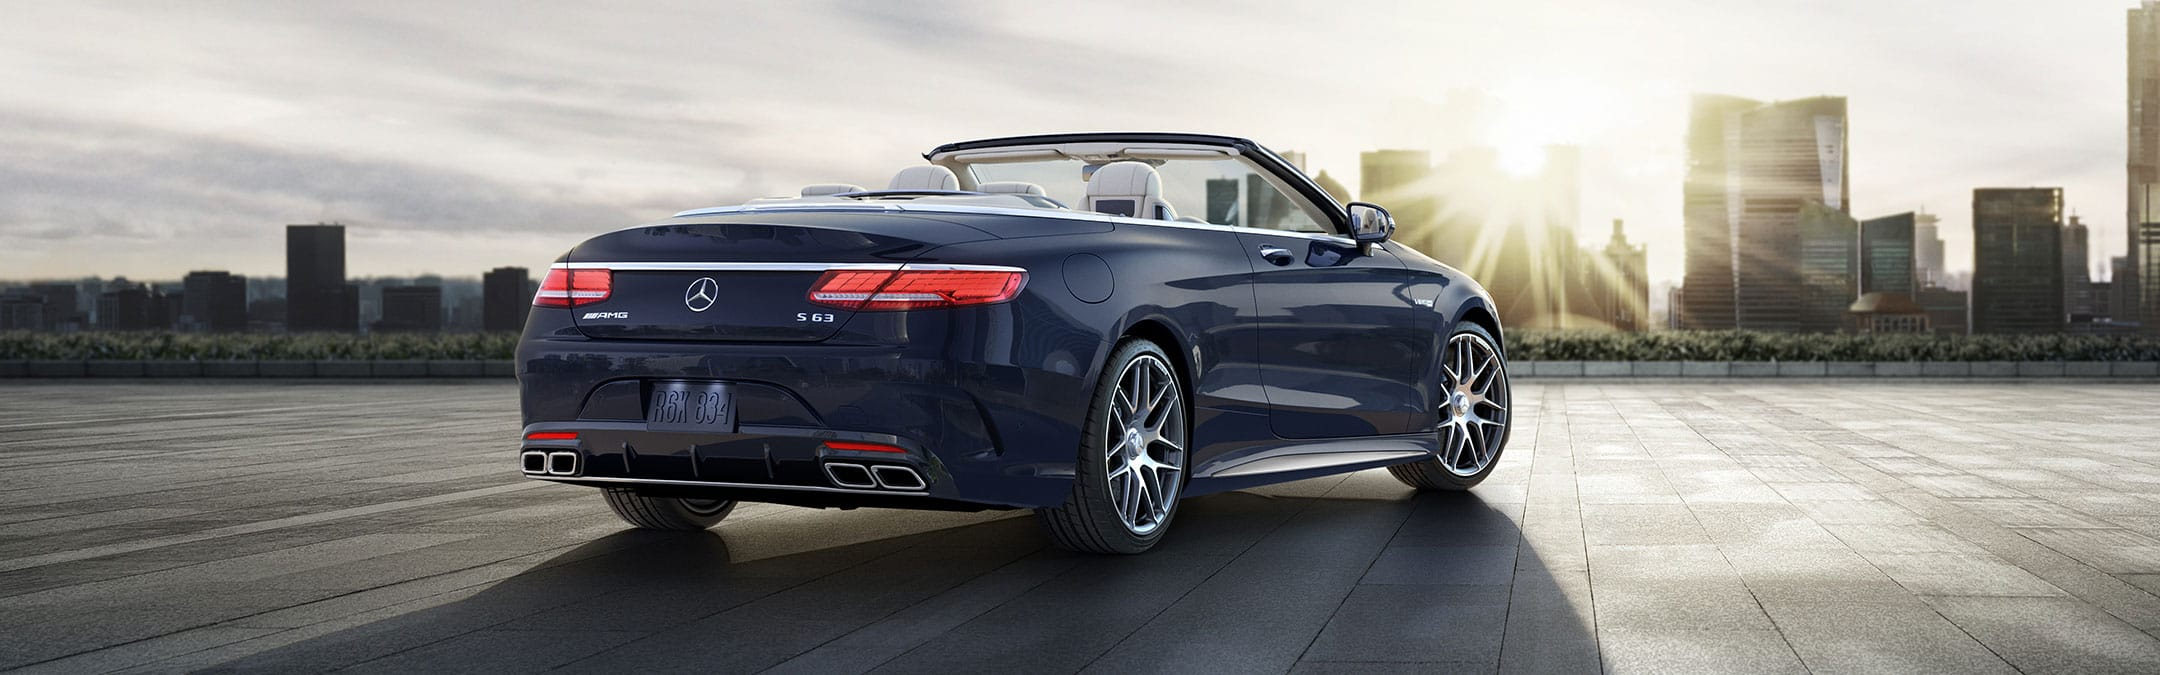 2019 Mercedes-AMG S-Class Cabriolet